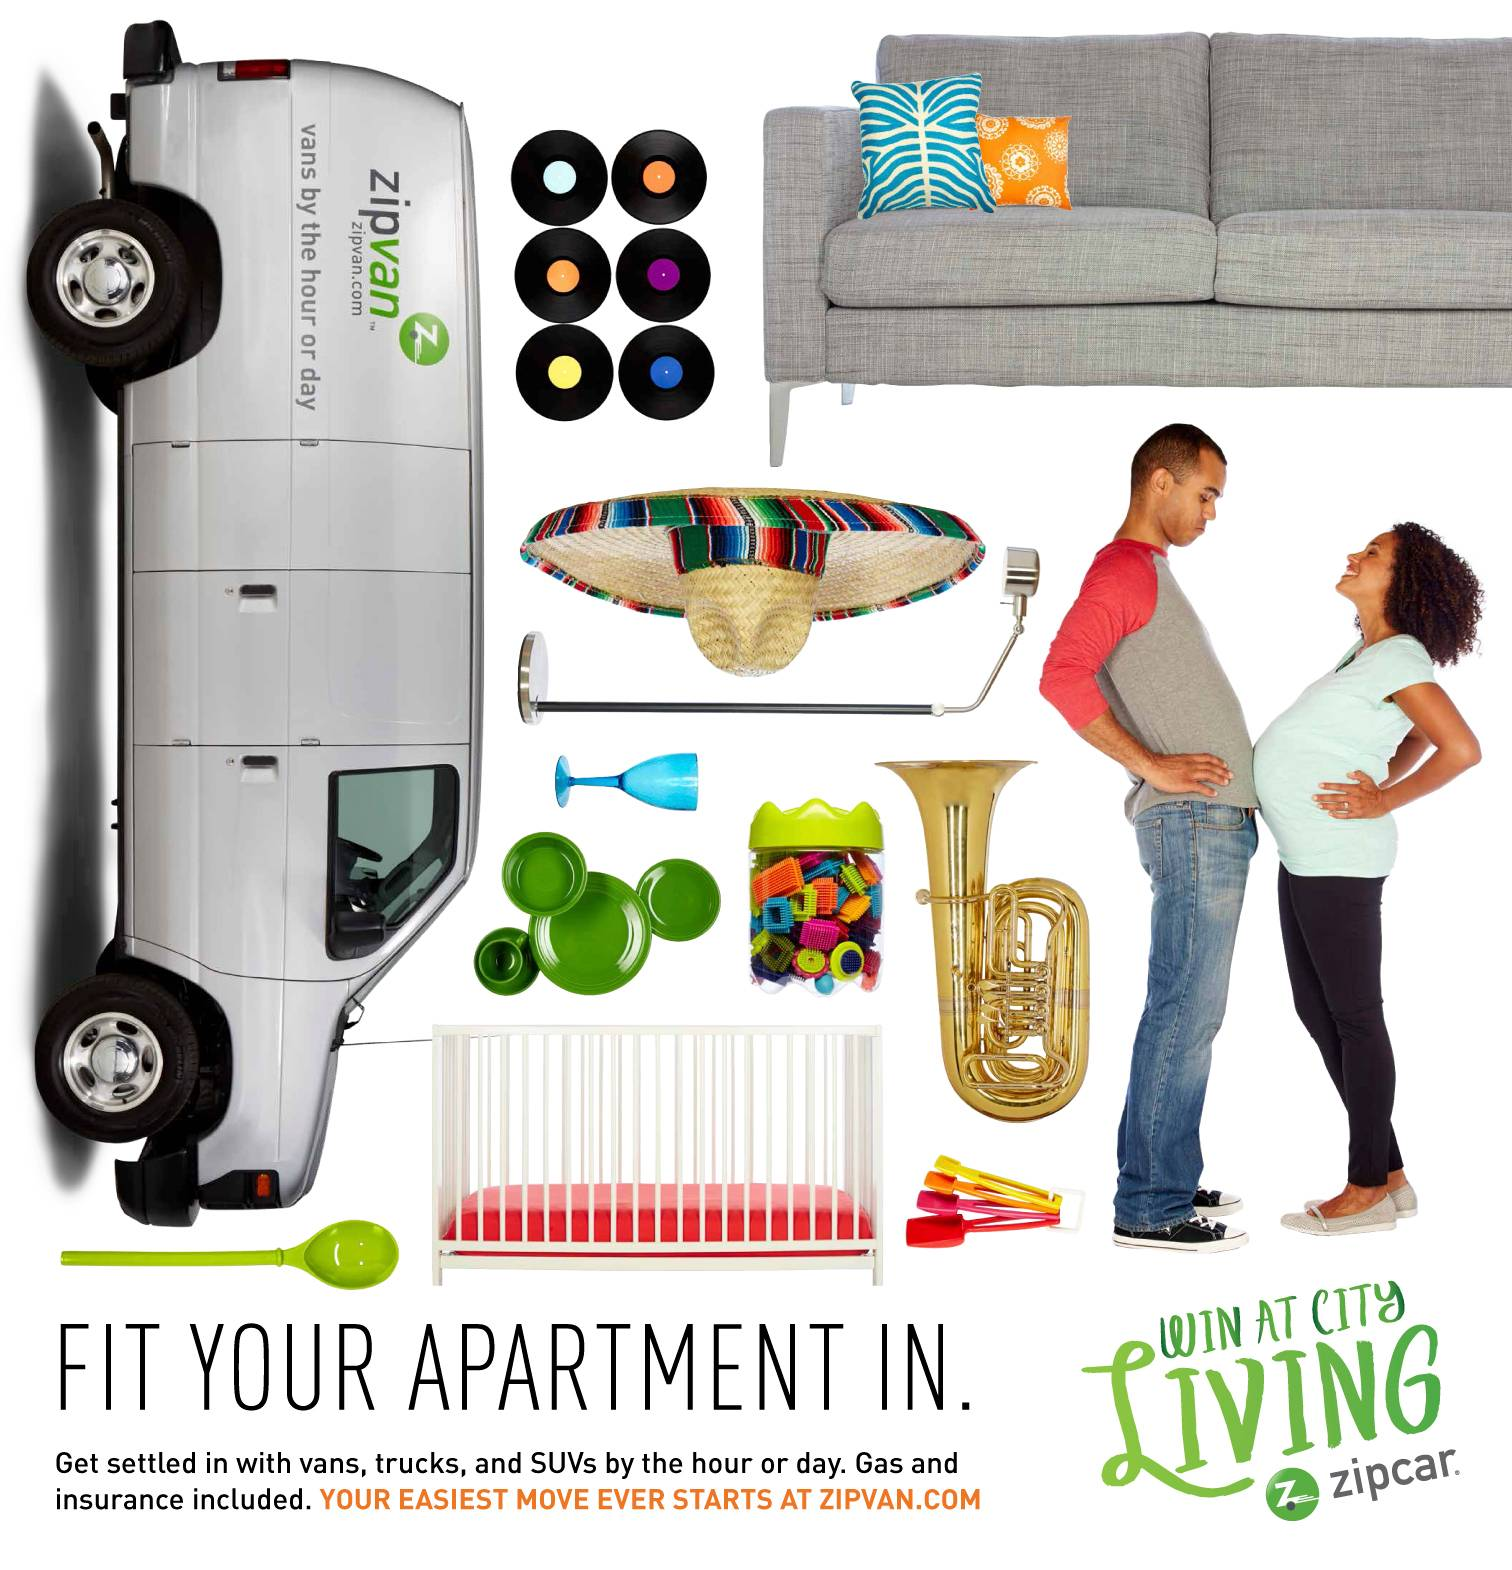 fit_your_POSTERS_21x22_CMYK-5.jpg